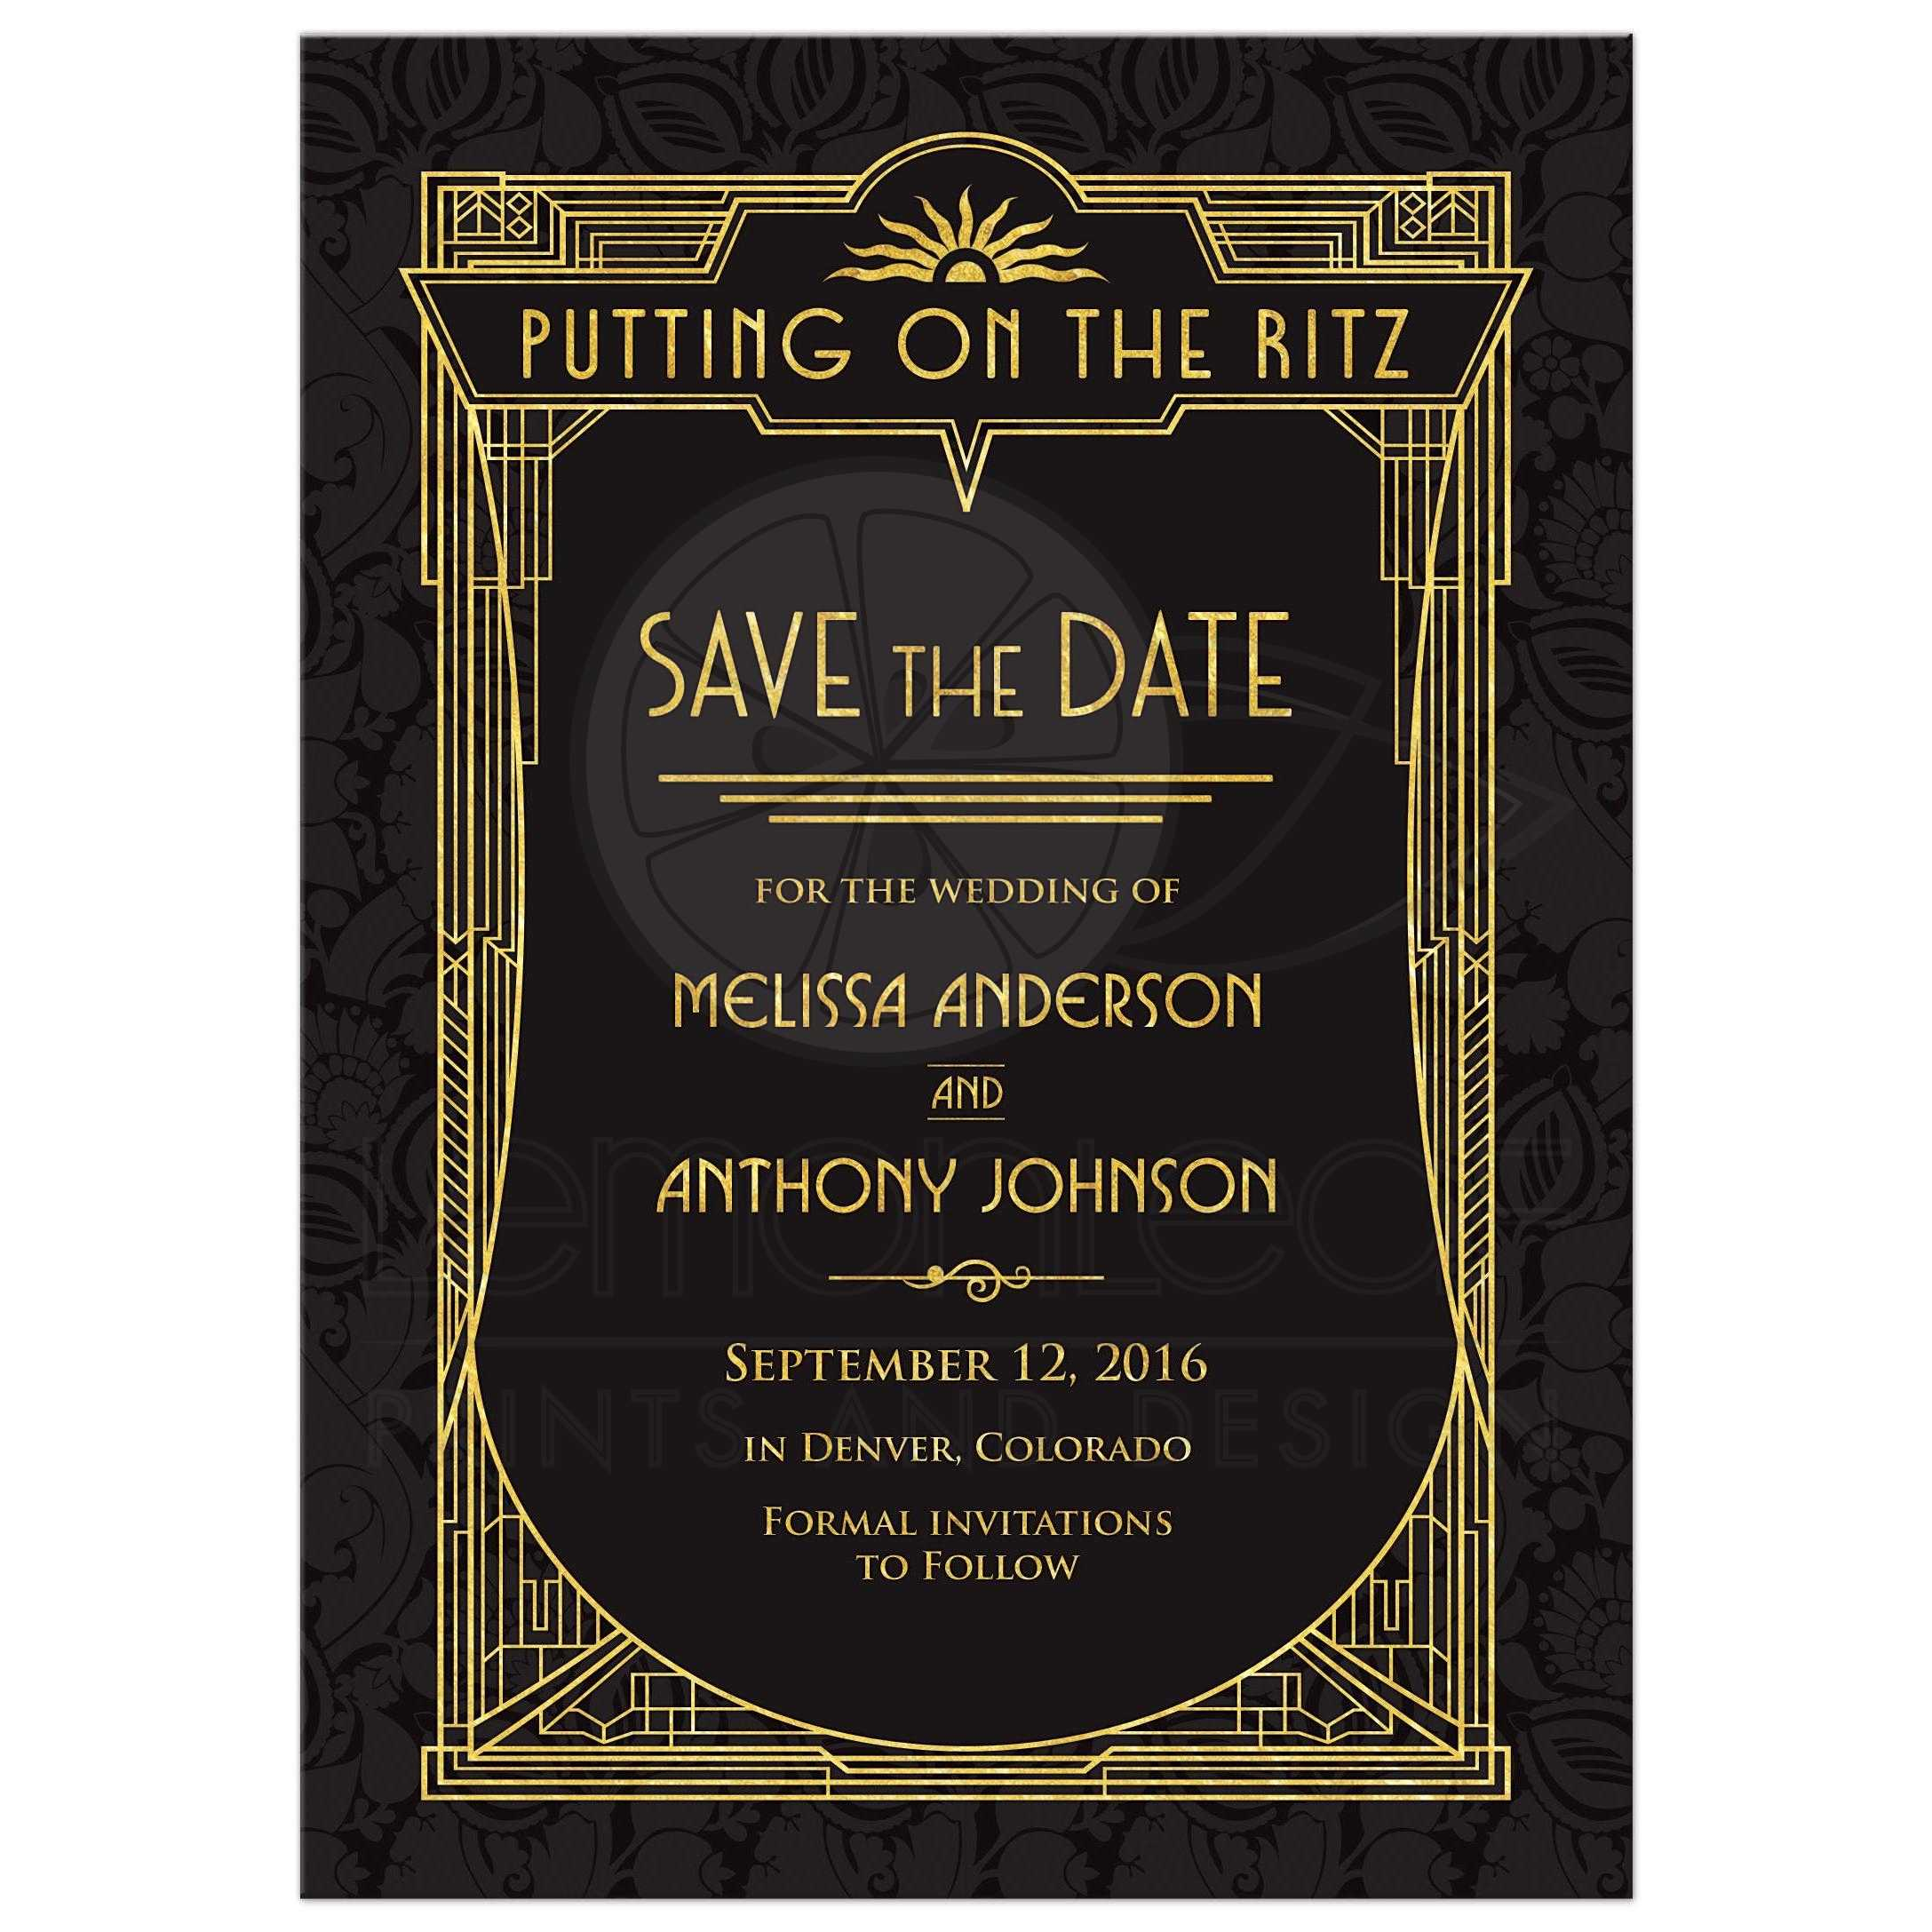 Art Deco Wedding Save the Date Card Black Gold Roaring 20s Gatsby